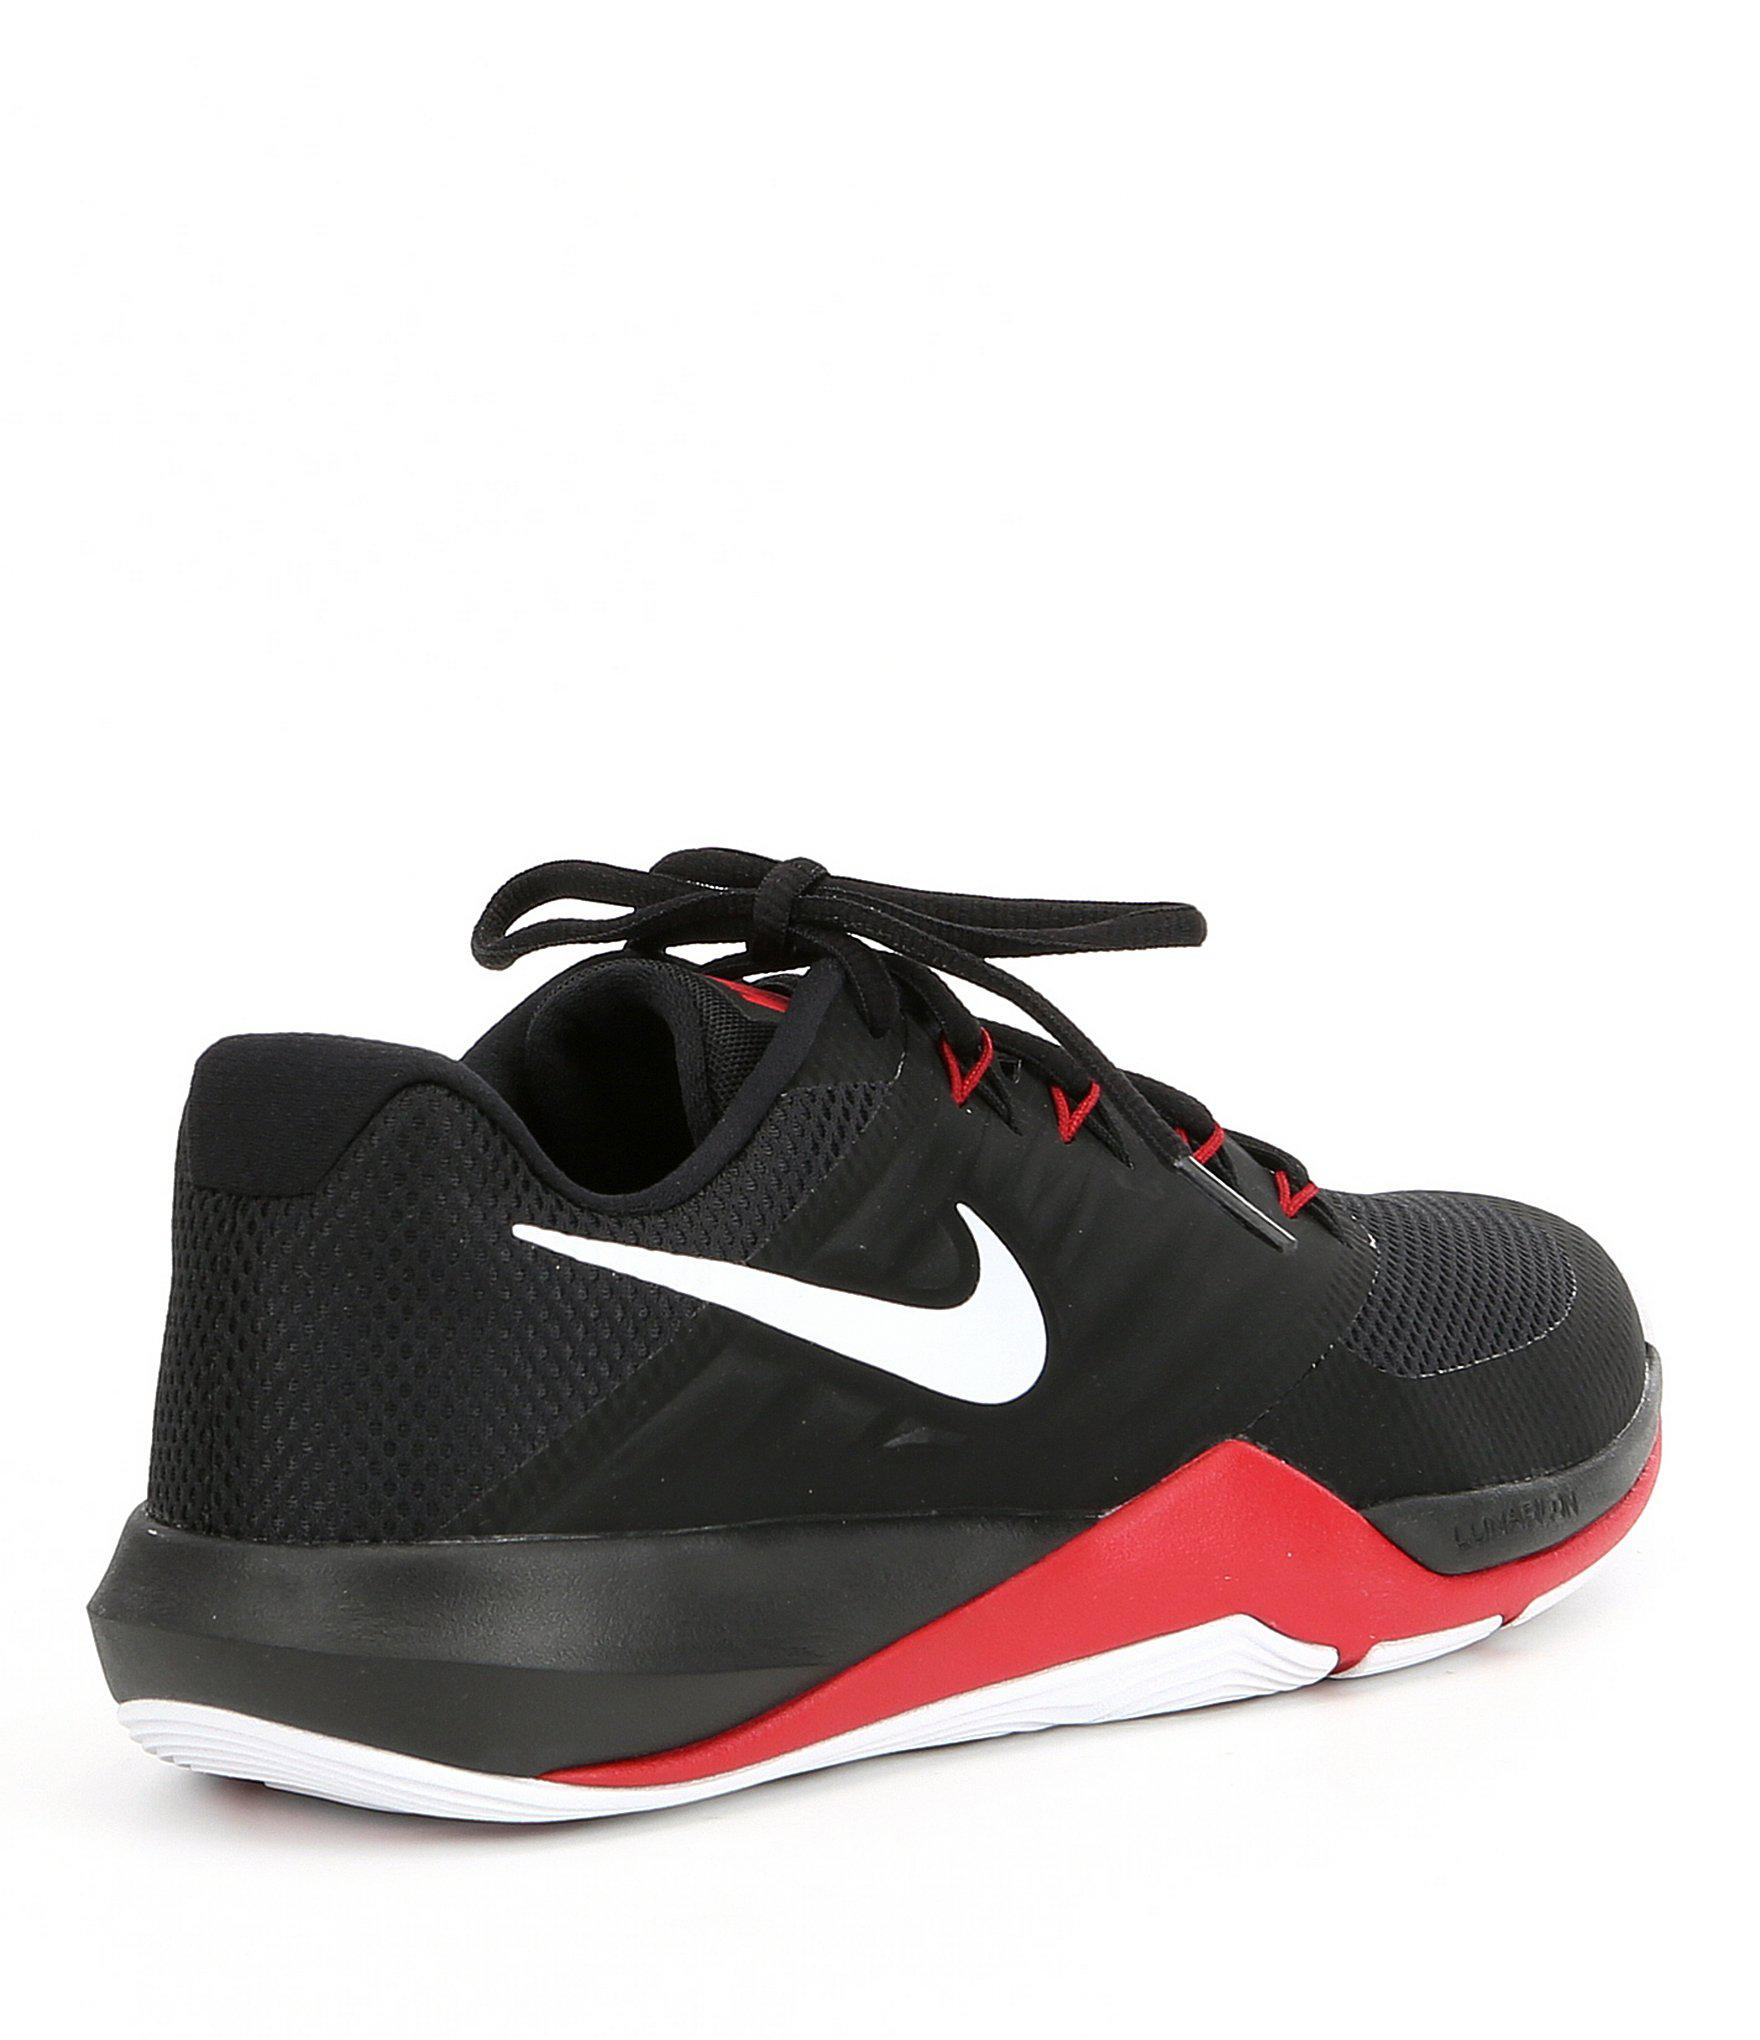 d40acaa9824f Lyst - Nike Men s Lunar Prime Iron Ii Trainer Shoes in Black for Men